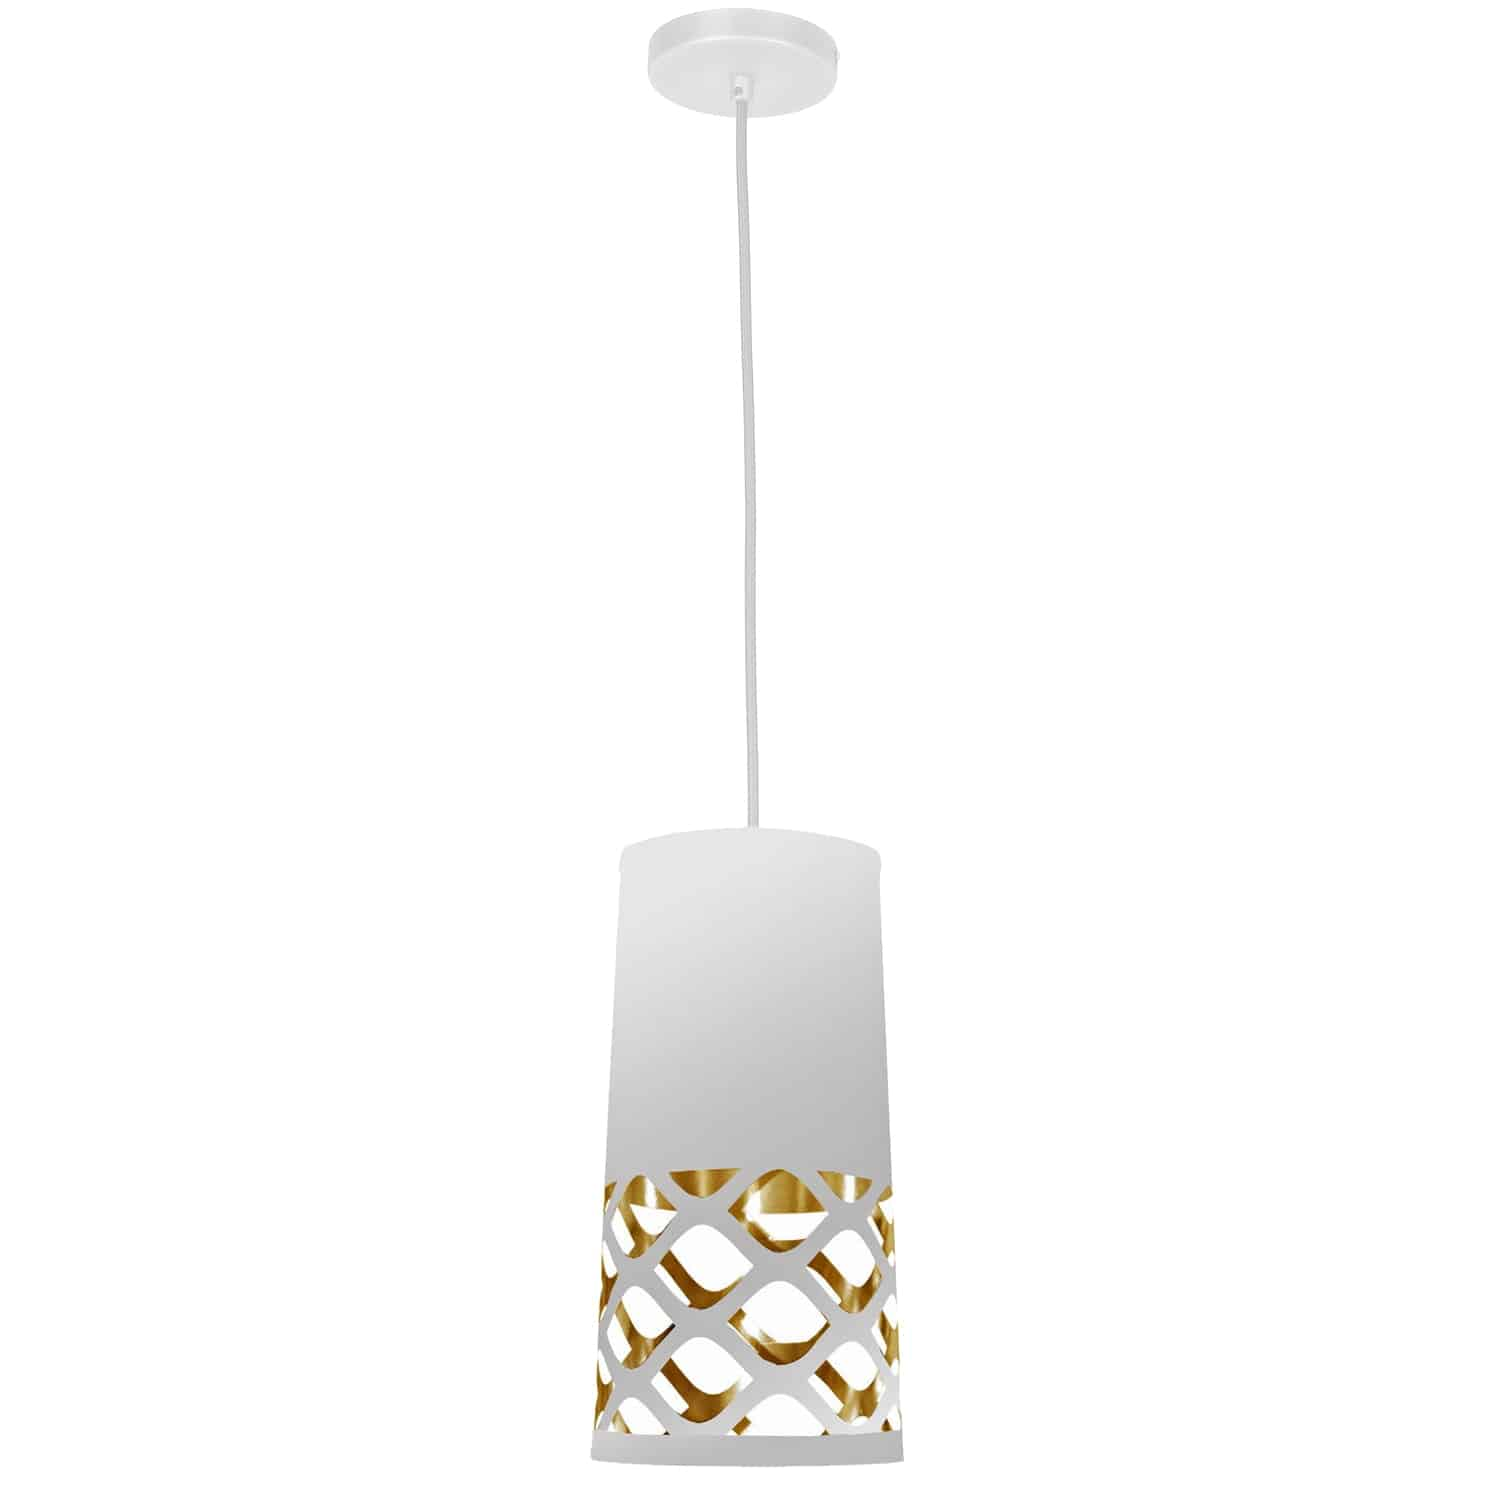 1 Light Pendant with White on Gold Shade